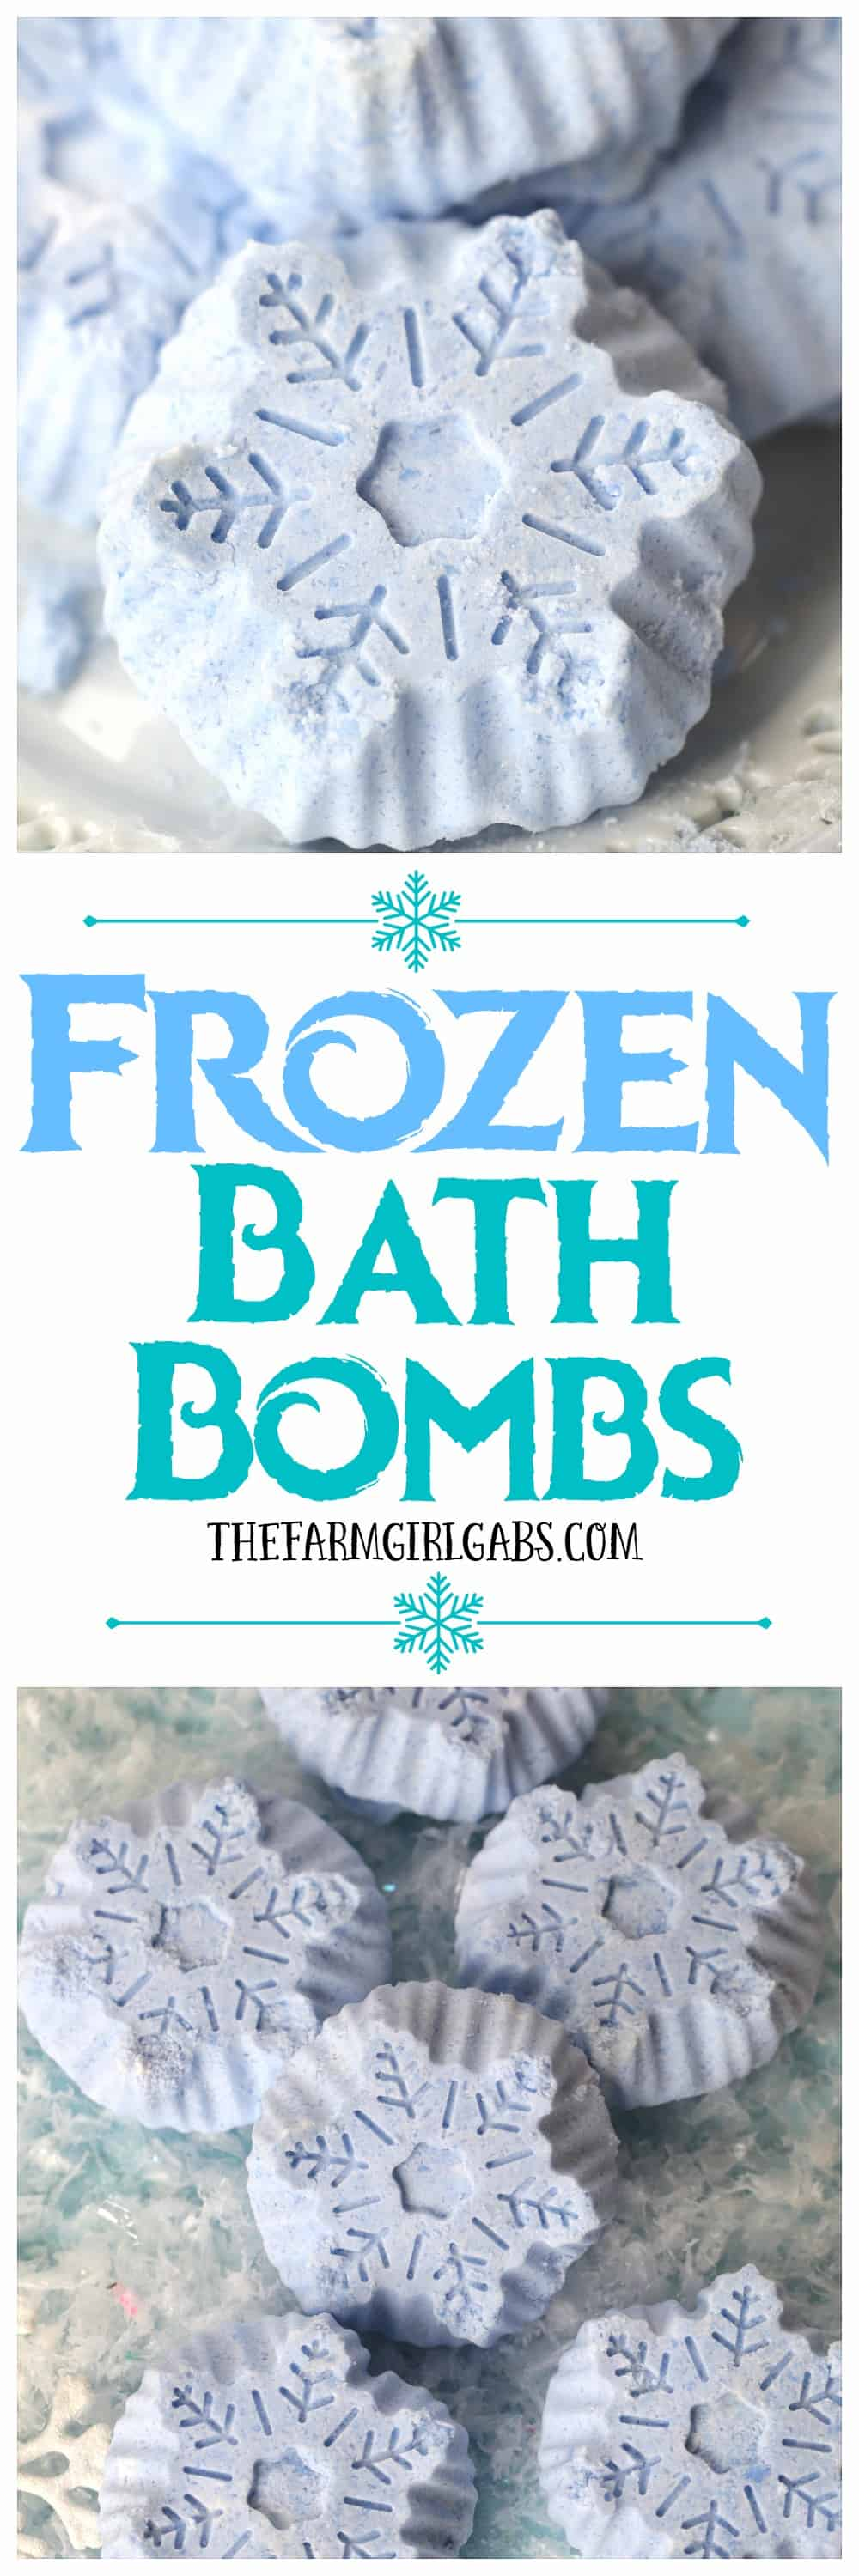 Bath bombs are so easy to make at home. These Disney-Inspired DIY Frozen Bath Bombs will help you unwind, relax and enjoy a much-needed spa day at home! They also make great Fish Extender gifts for your upcoming Disney Cruise.